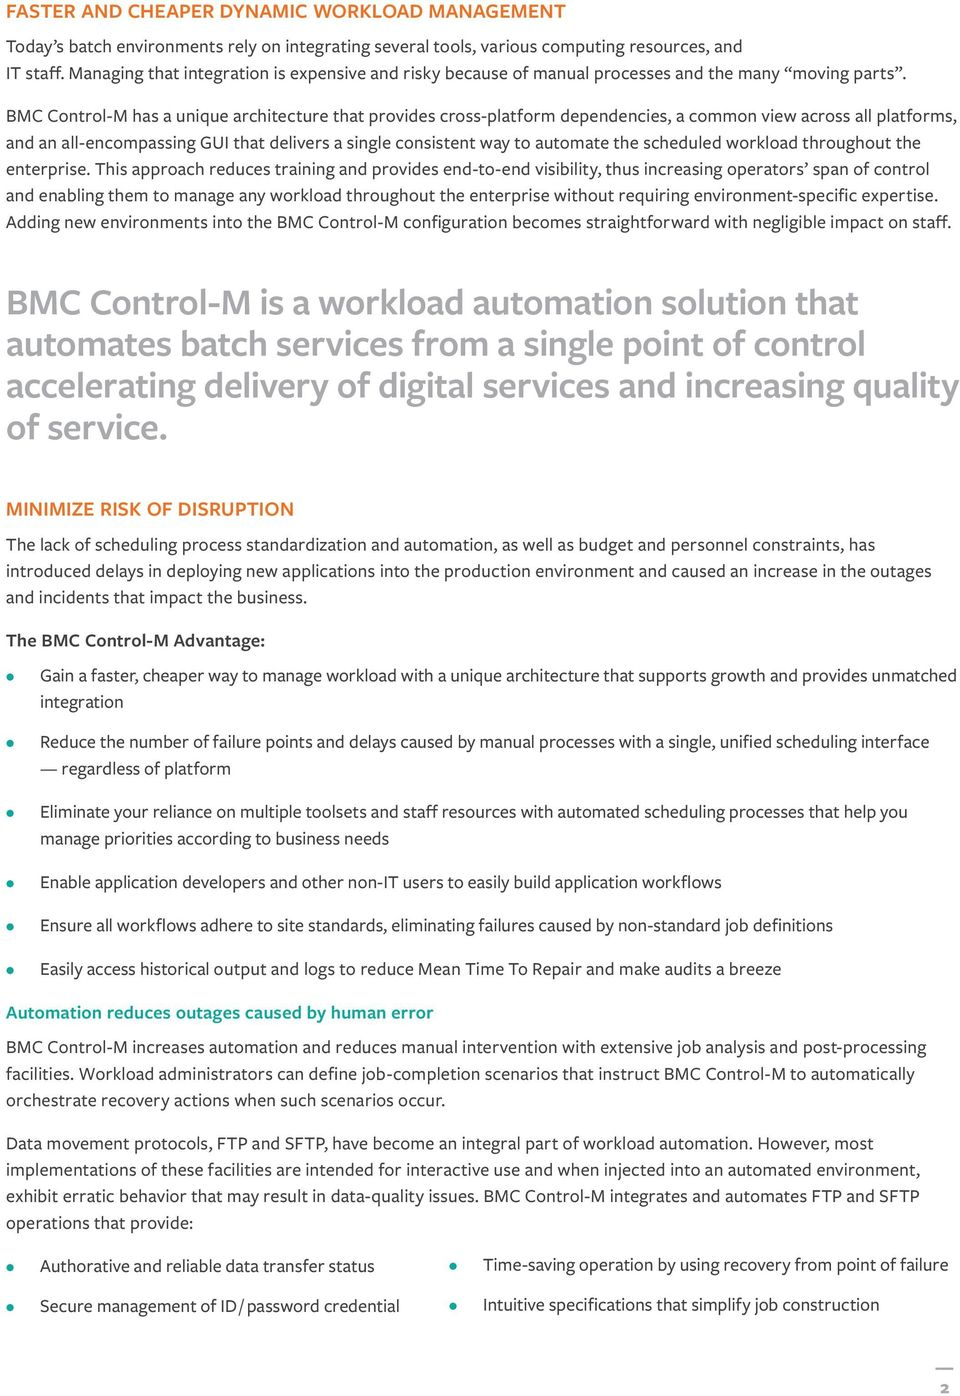 BMC Control-M has a unique architecture that provides cross-platform dependencies, a common view across all platforms, and an all-encompassing GUI that delivers a single consistent way to automate